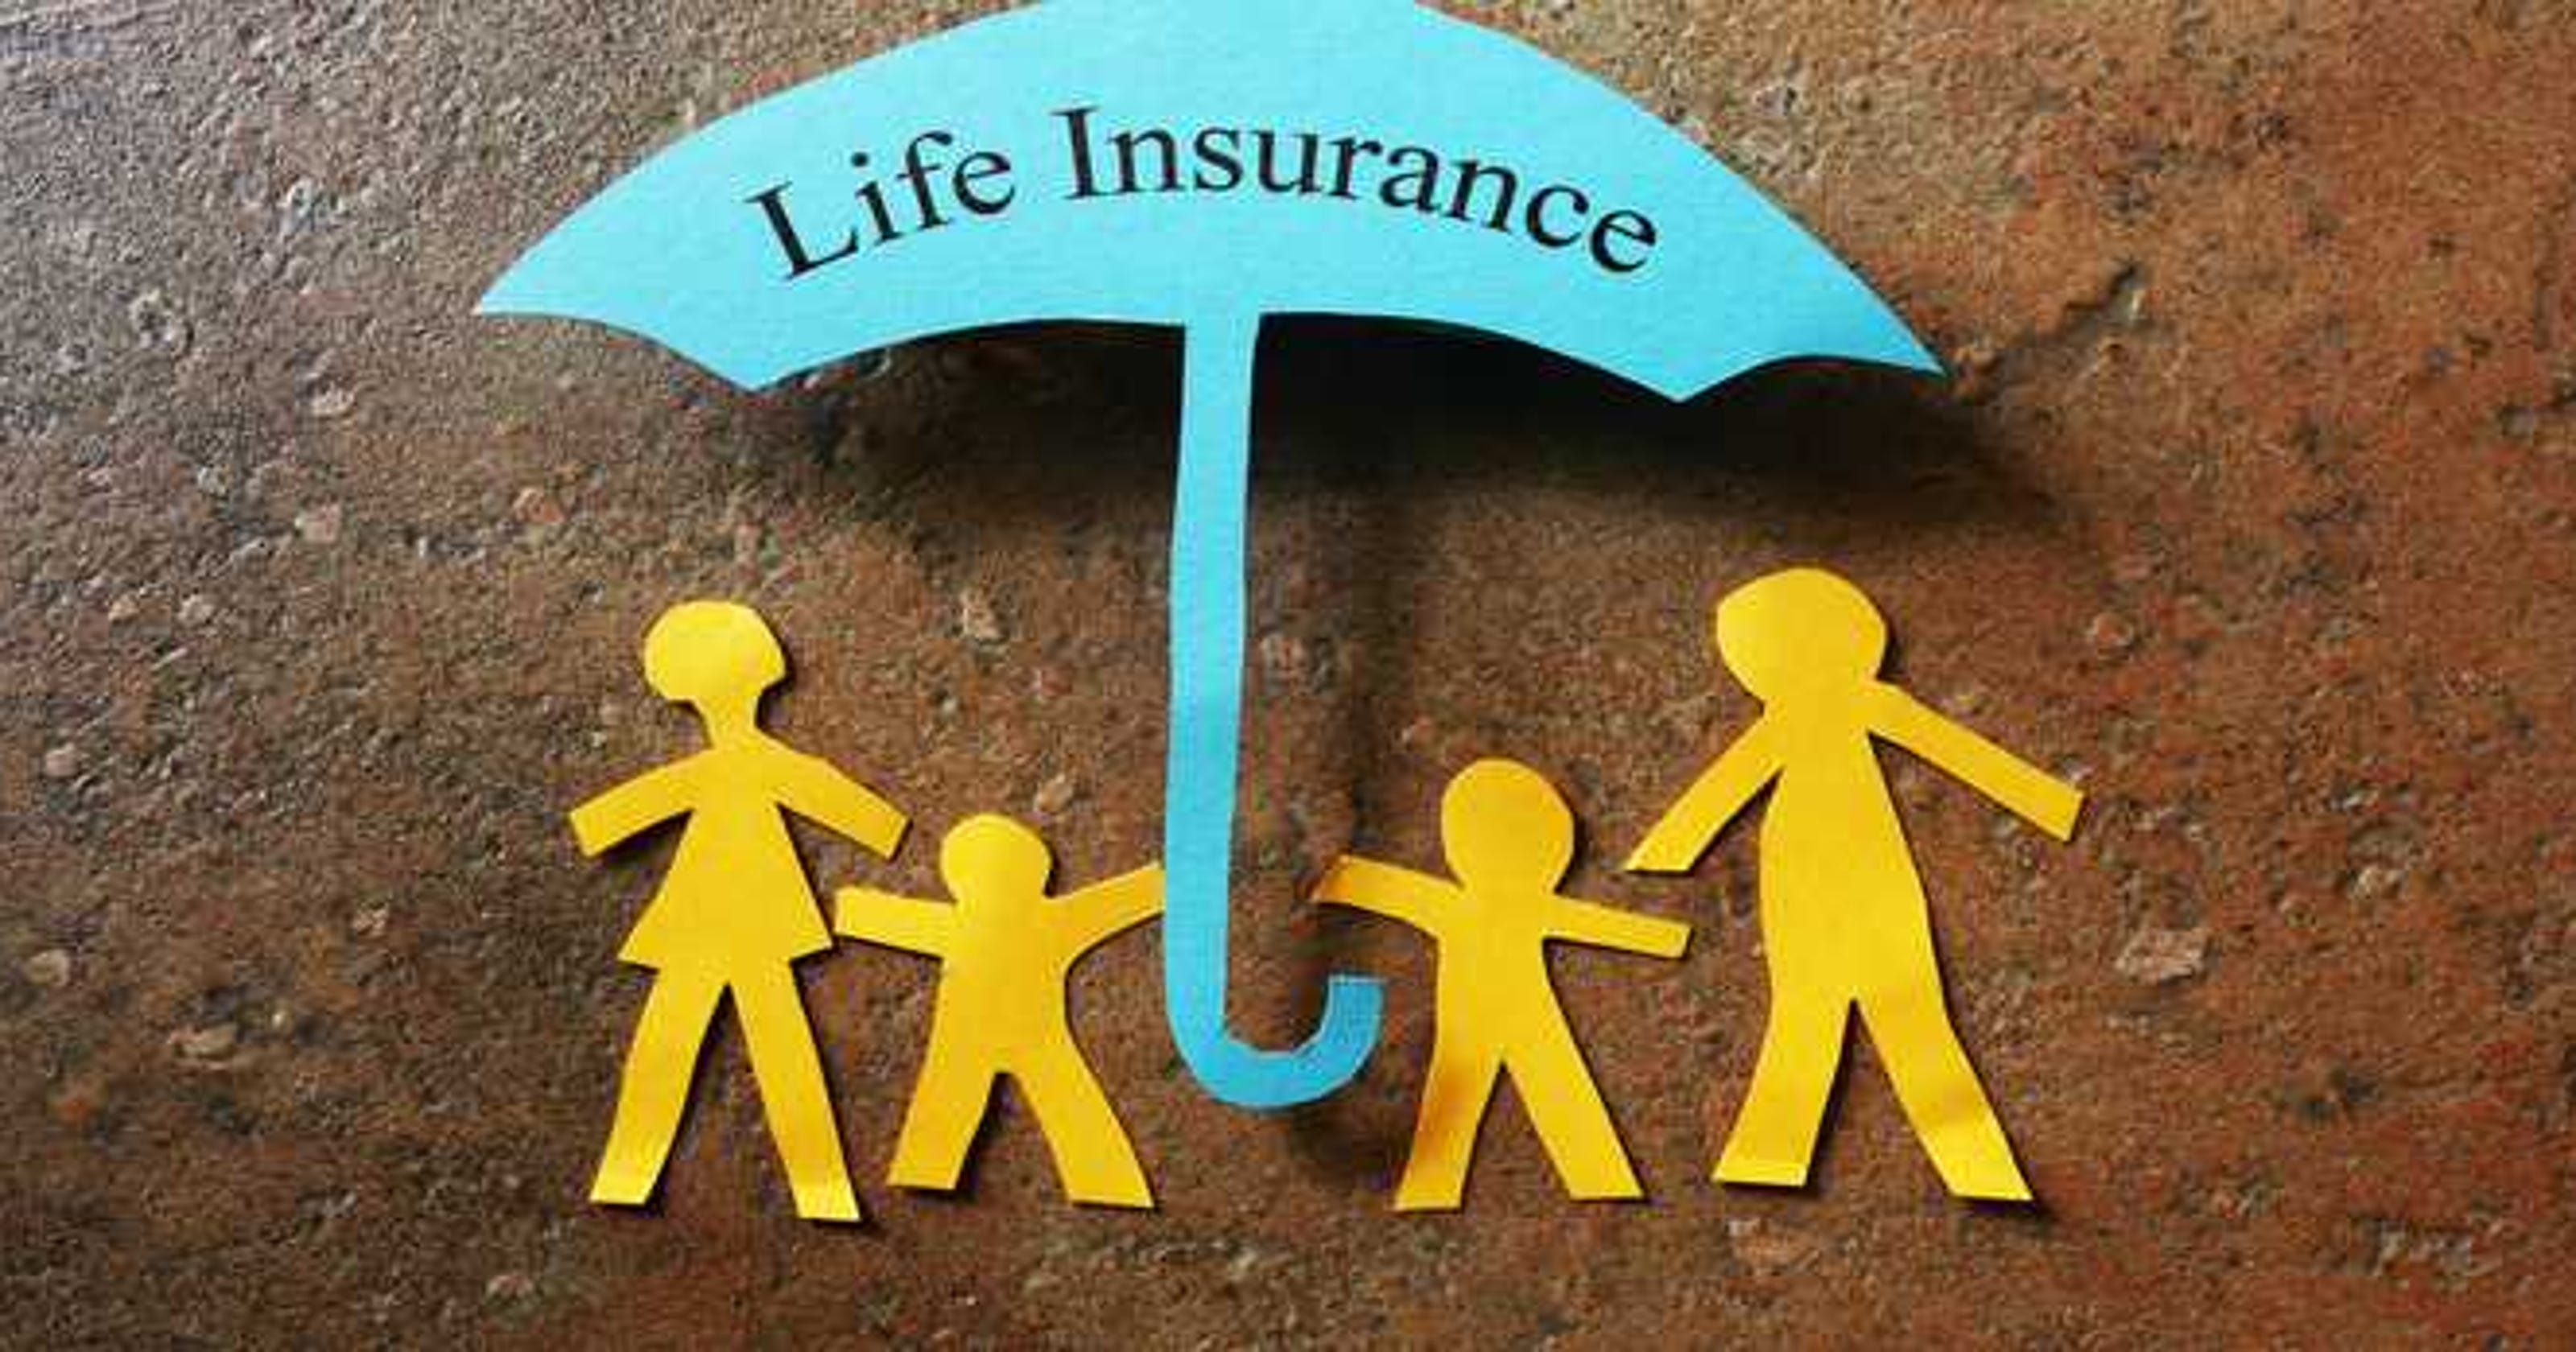 Life insurance extras: Which riders are worth the price?